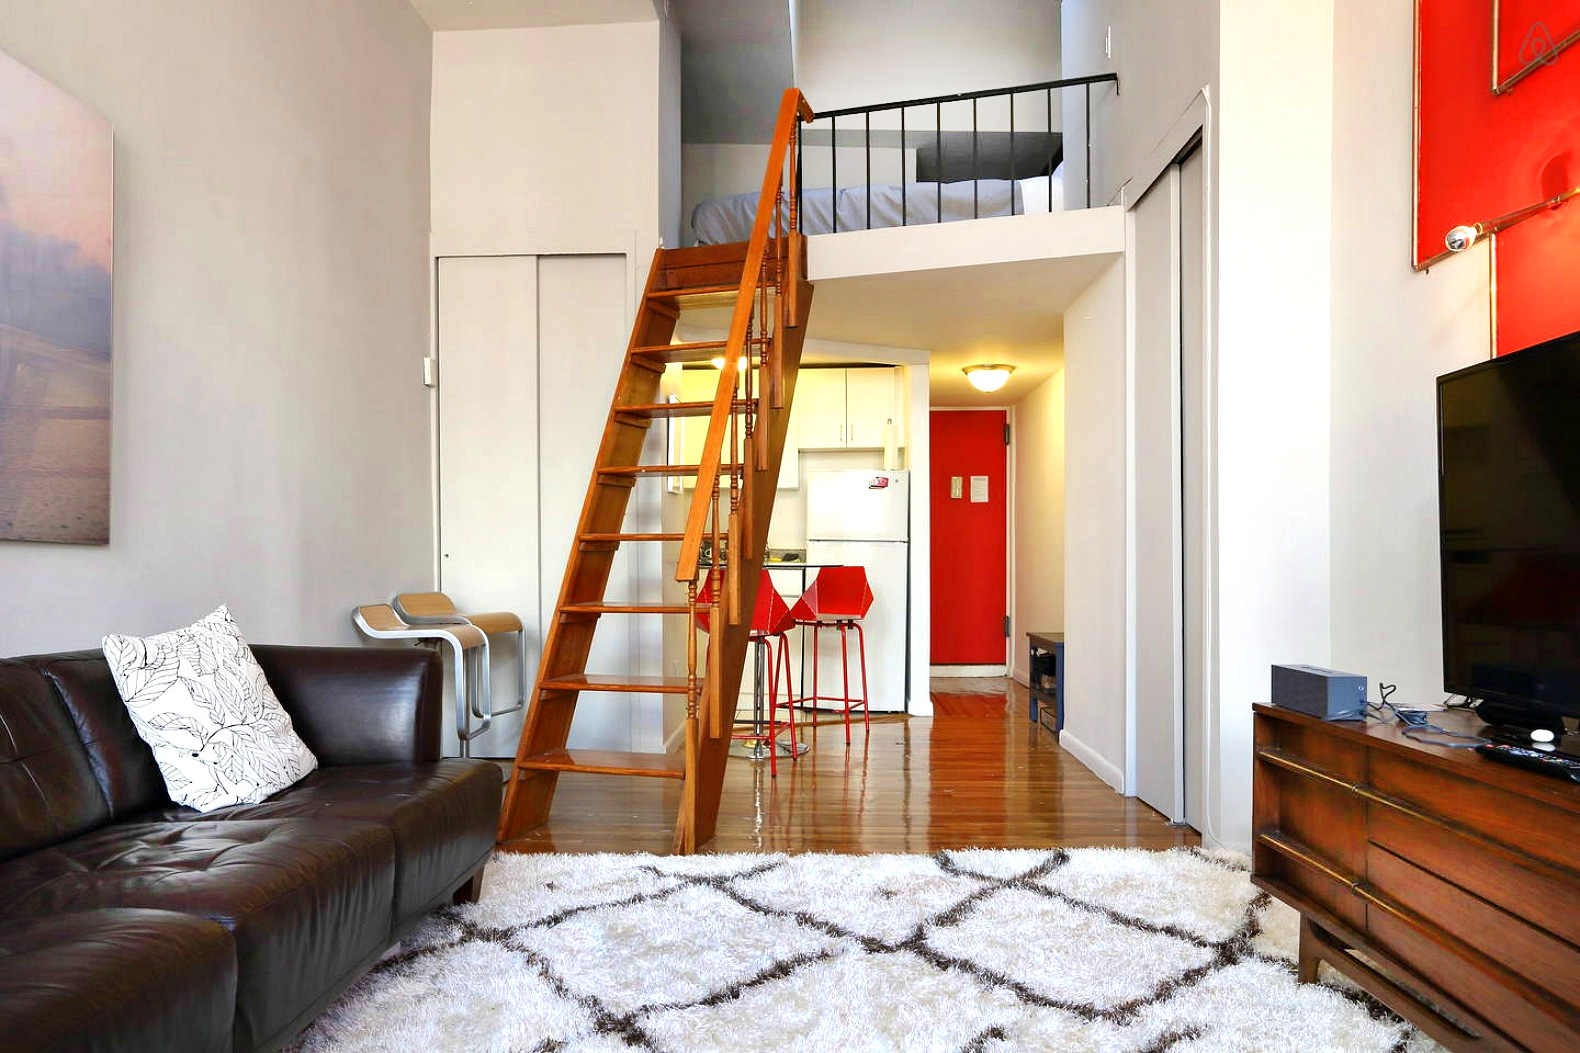 Rent this modern 500 square foot greenwich village loft on - How big is 500 square feet apartment ...